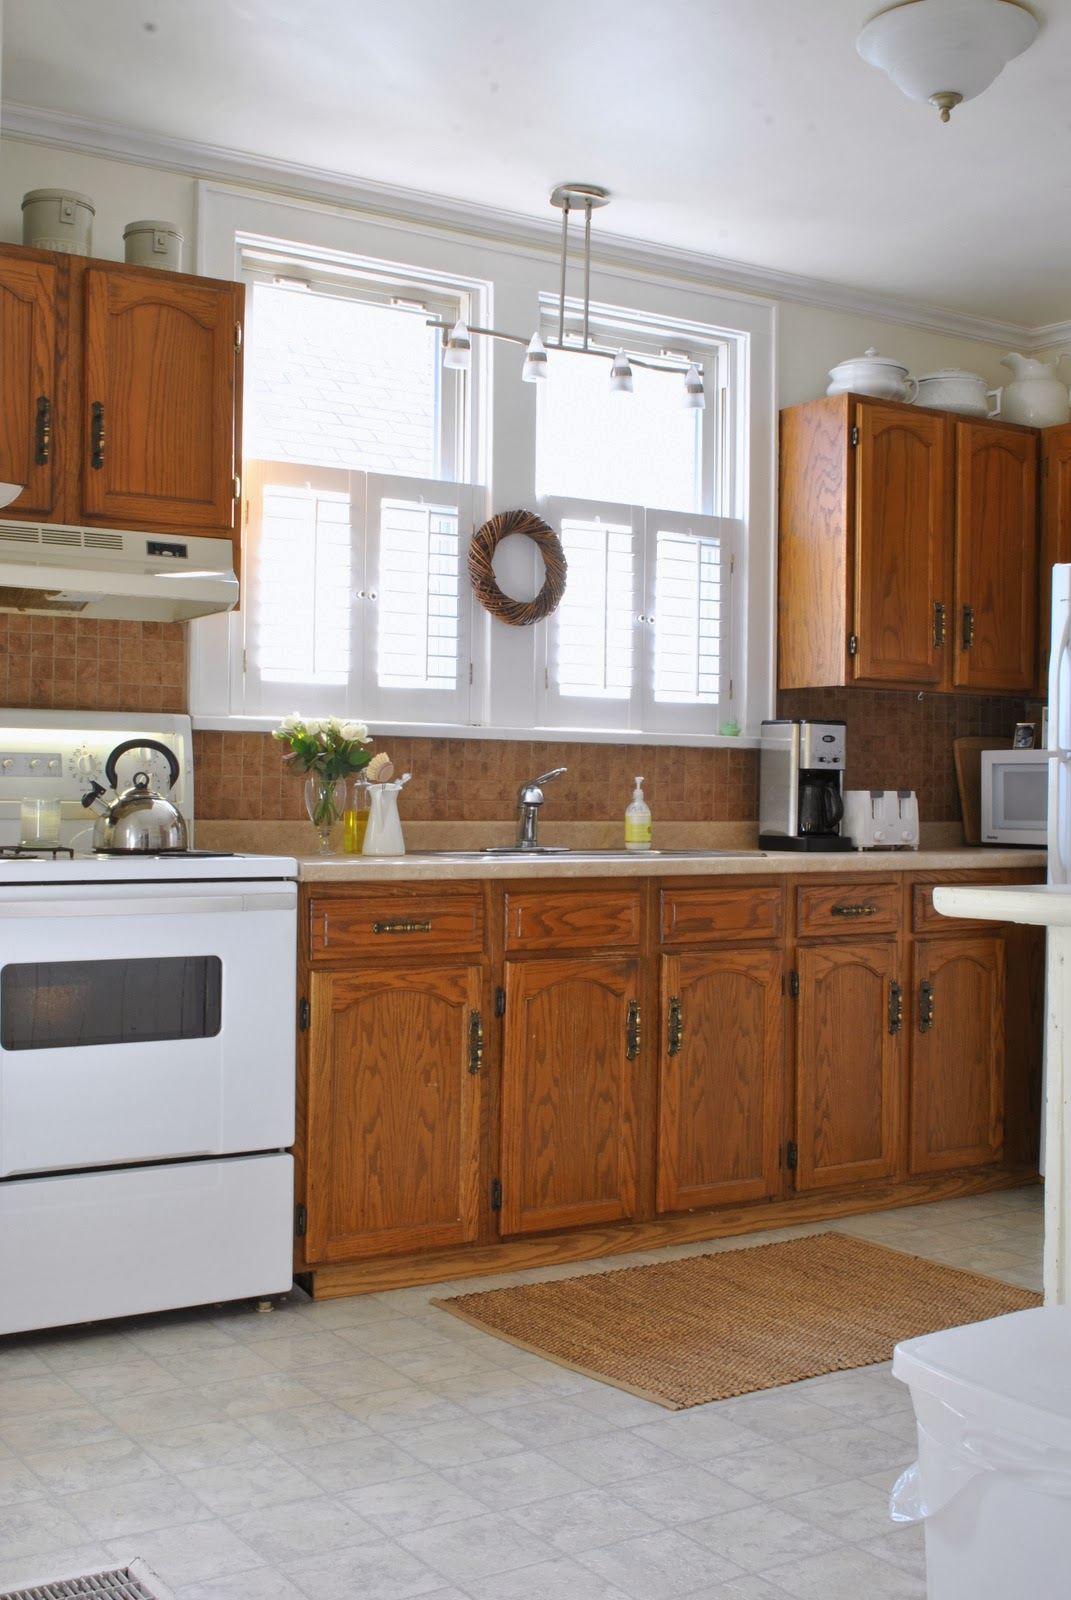 The Grower's Daughter: Planning A Kitchen Update